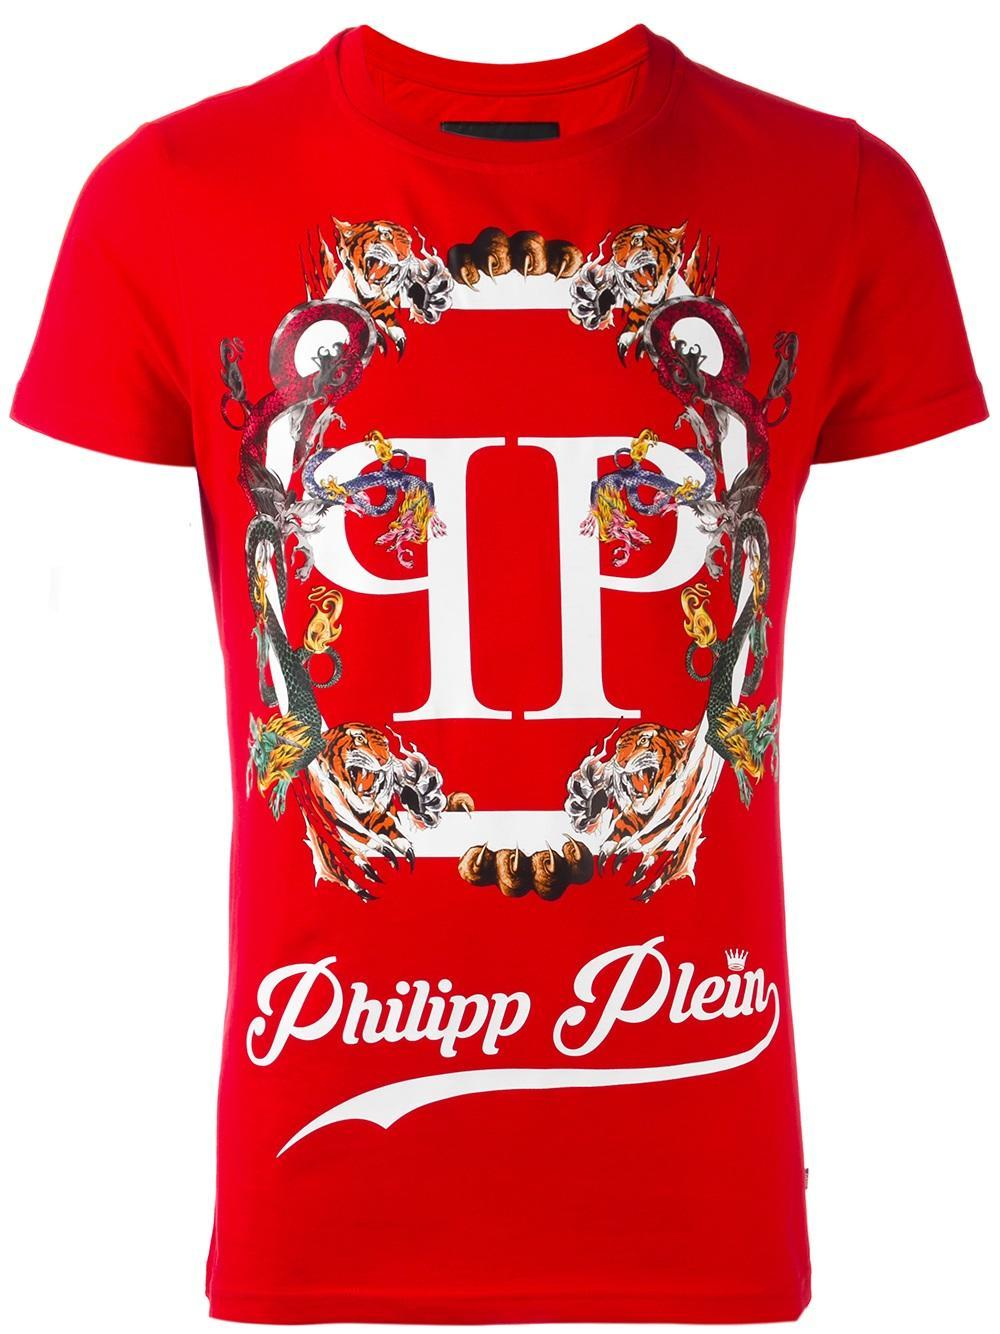 lyst philipp plein pleins t shirt in red for men. Black Bedroom Furniture Sets. Home Design Ideas